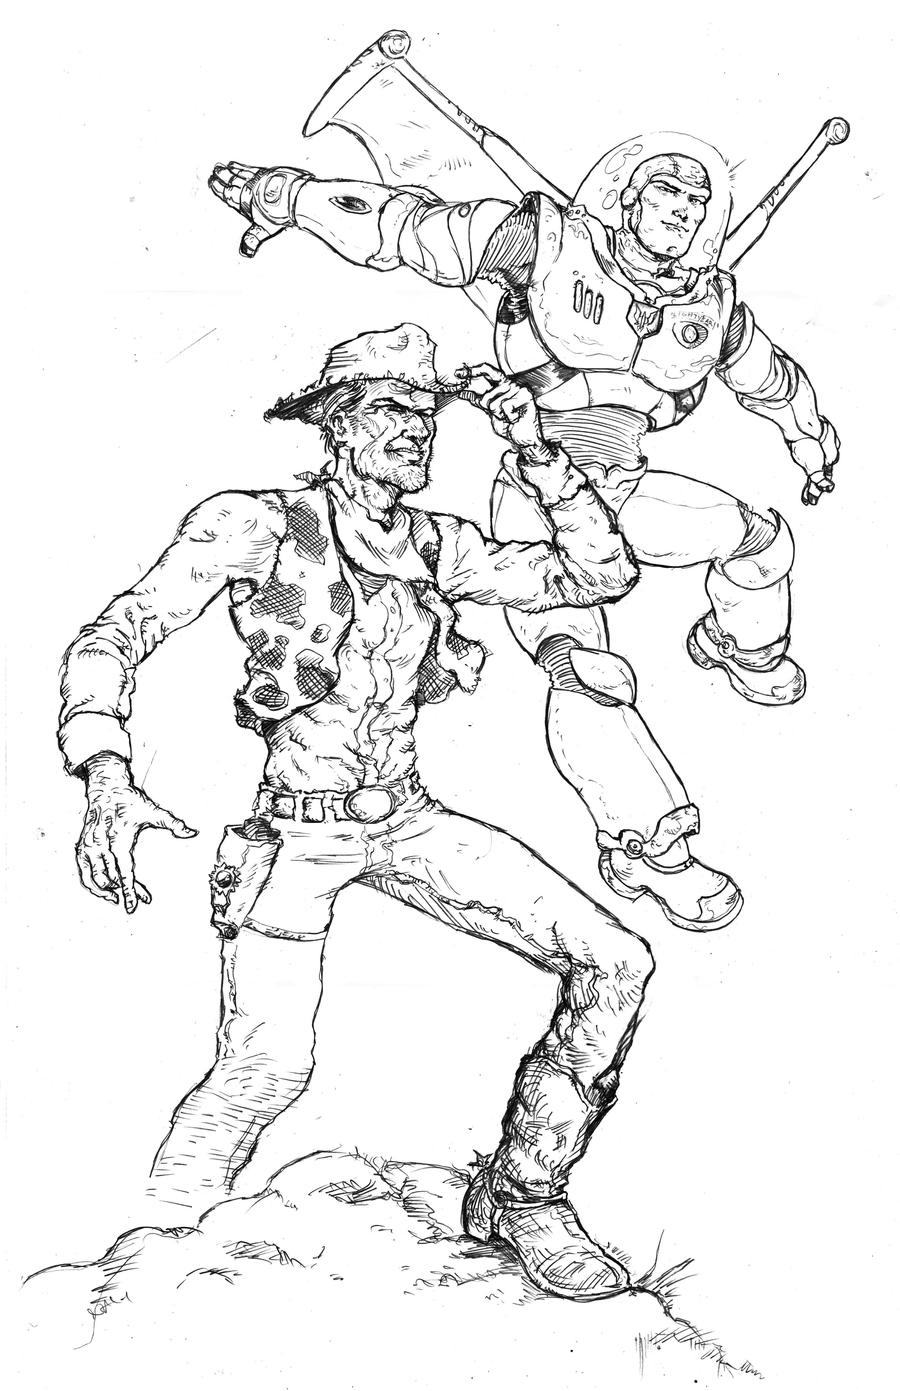 Buzz and woody by ramonvillalobos on deviantart for Buzz and woody coloring pages